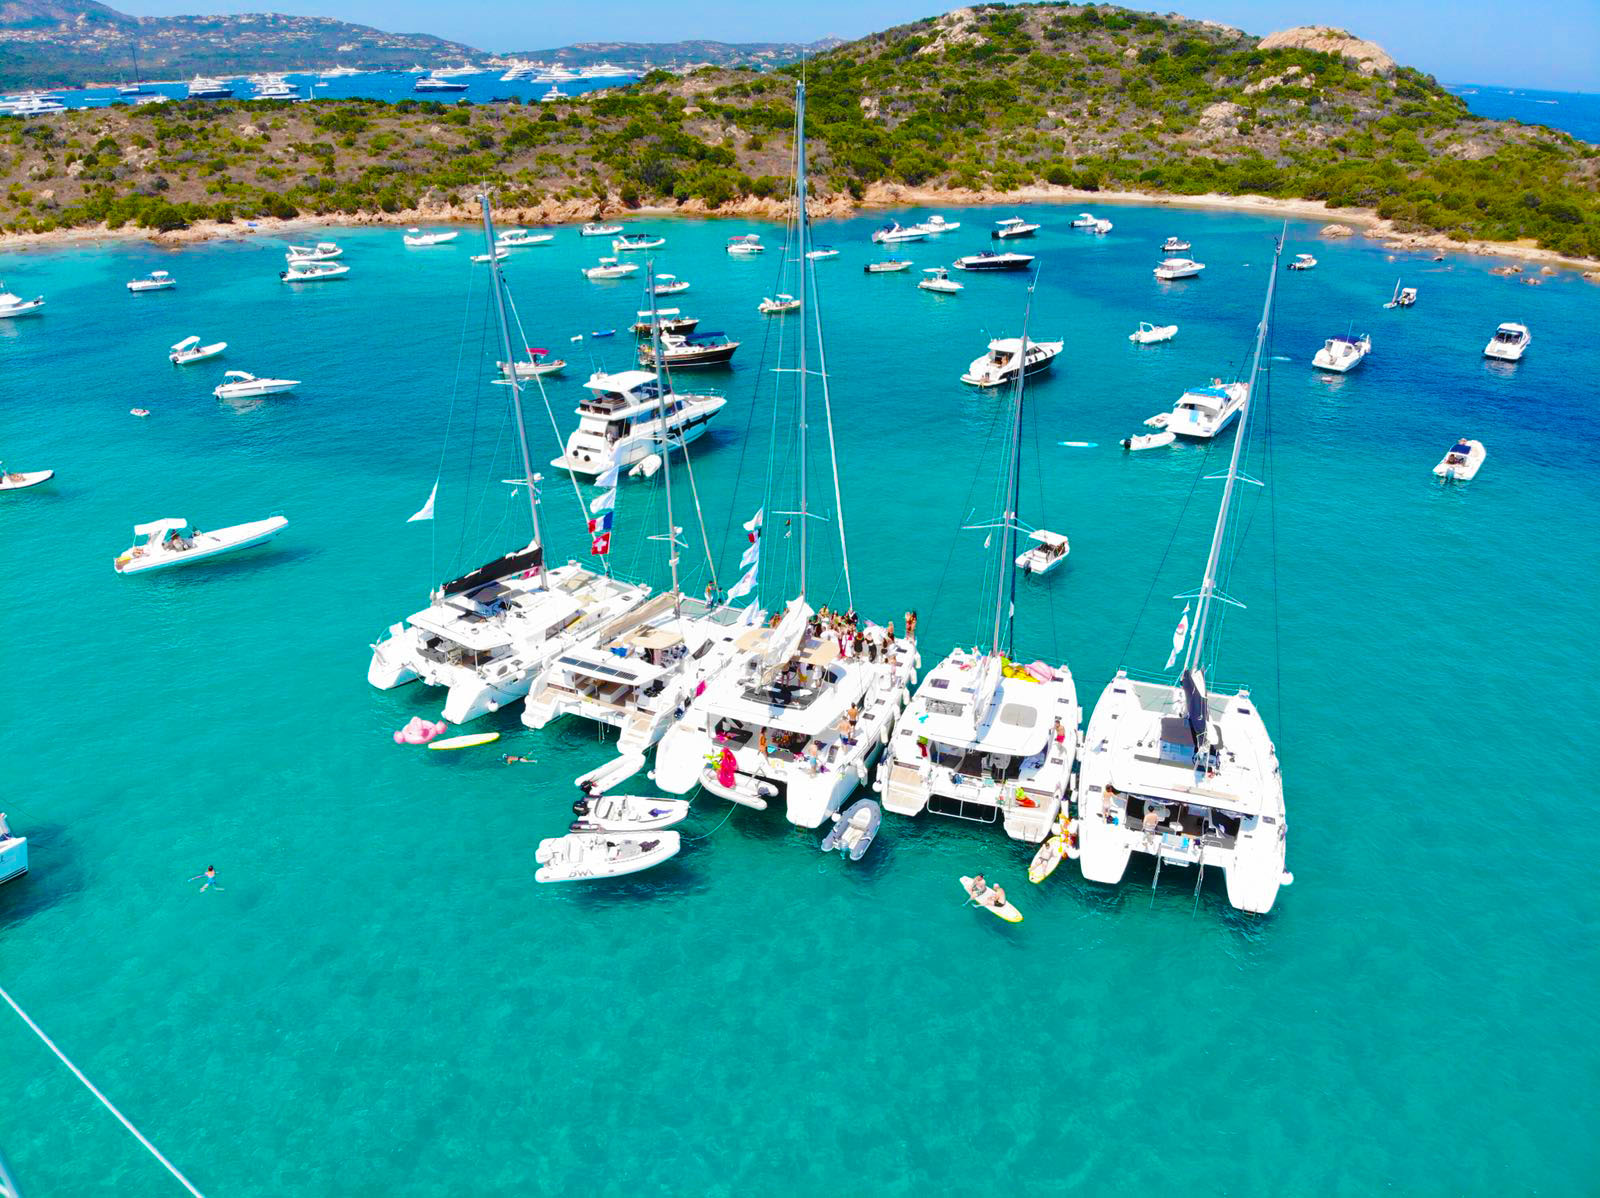 Our fleet of 5 catamarans, 60 friends!